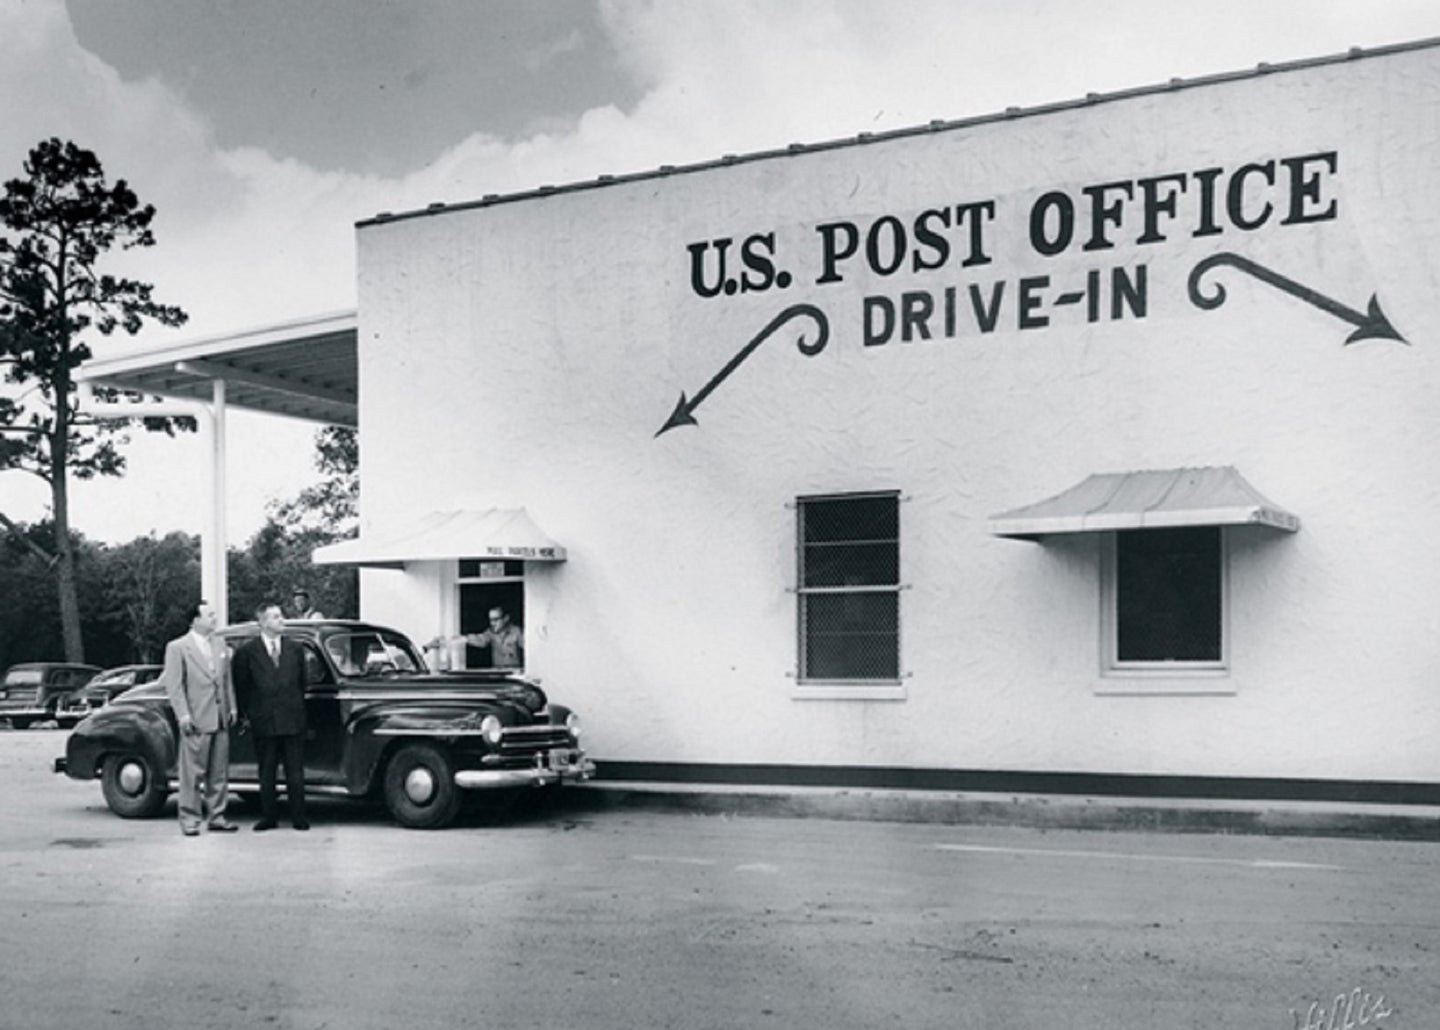 A drive-thru post office in Houston, Texas, in 1951 in black and white